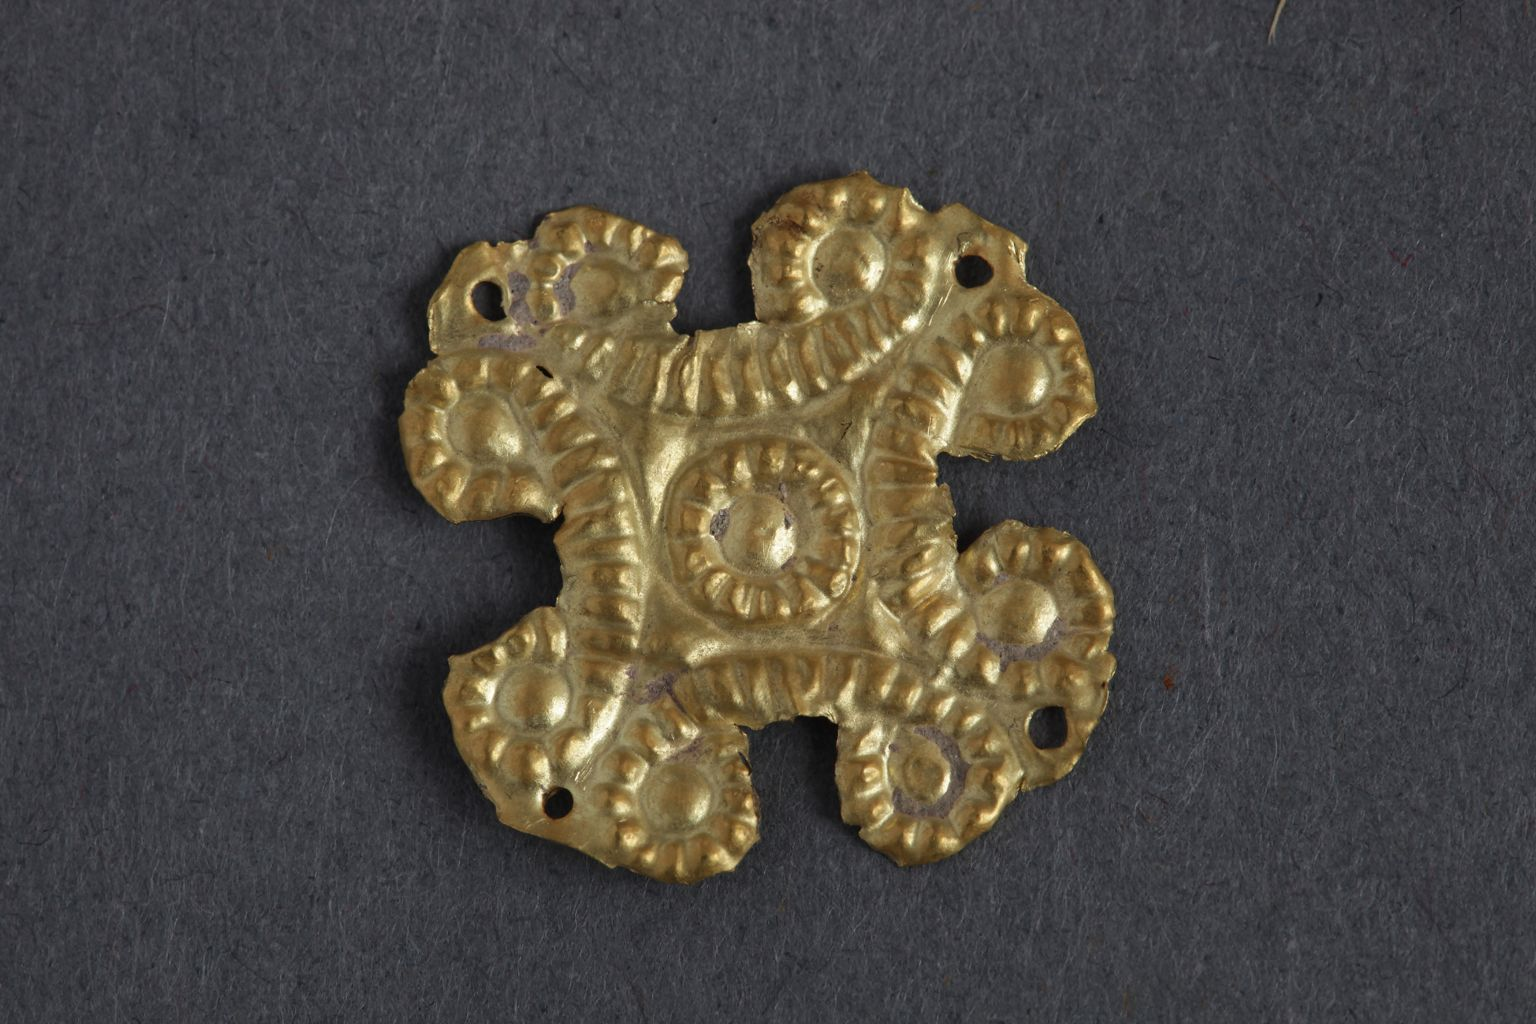 Gold floral appliqué from Ephesus